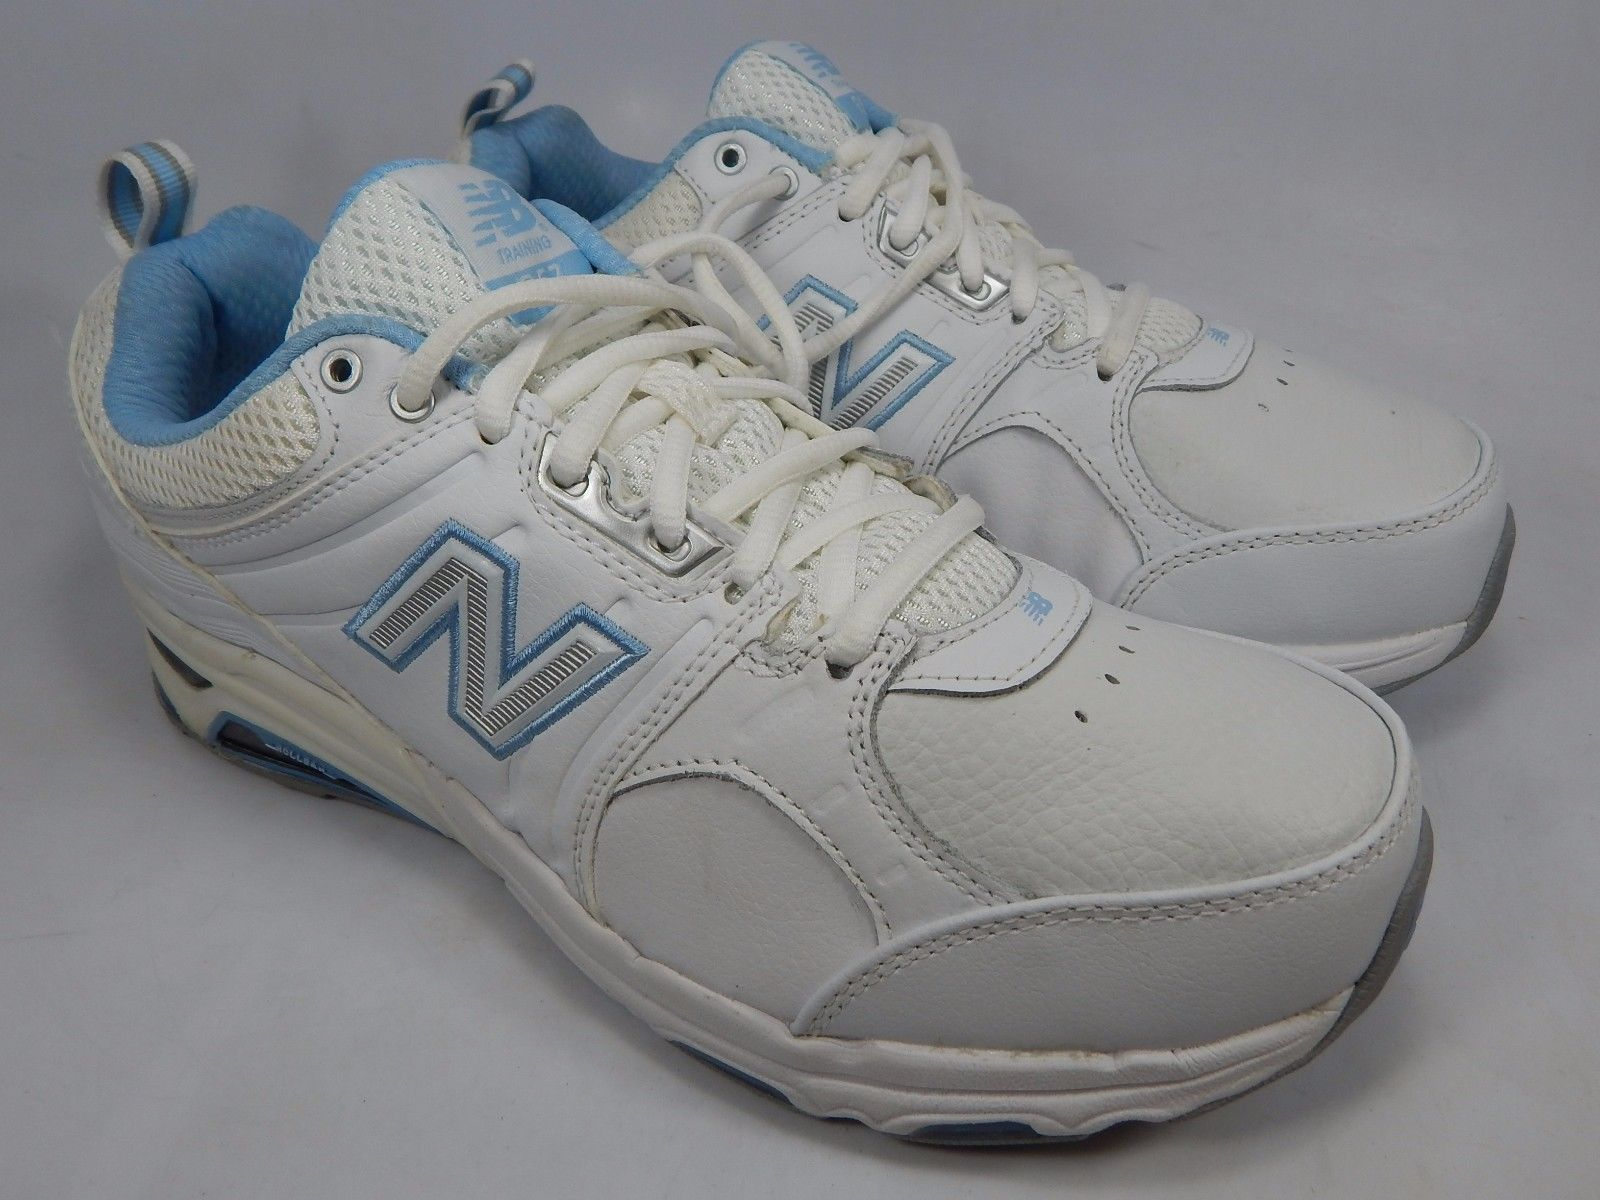 New Balance 857 Women's Cross Training Shoes Size US 10.5 2E EXTRA WIDE EU 42.5